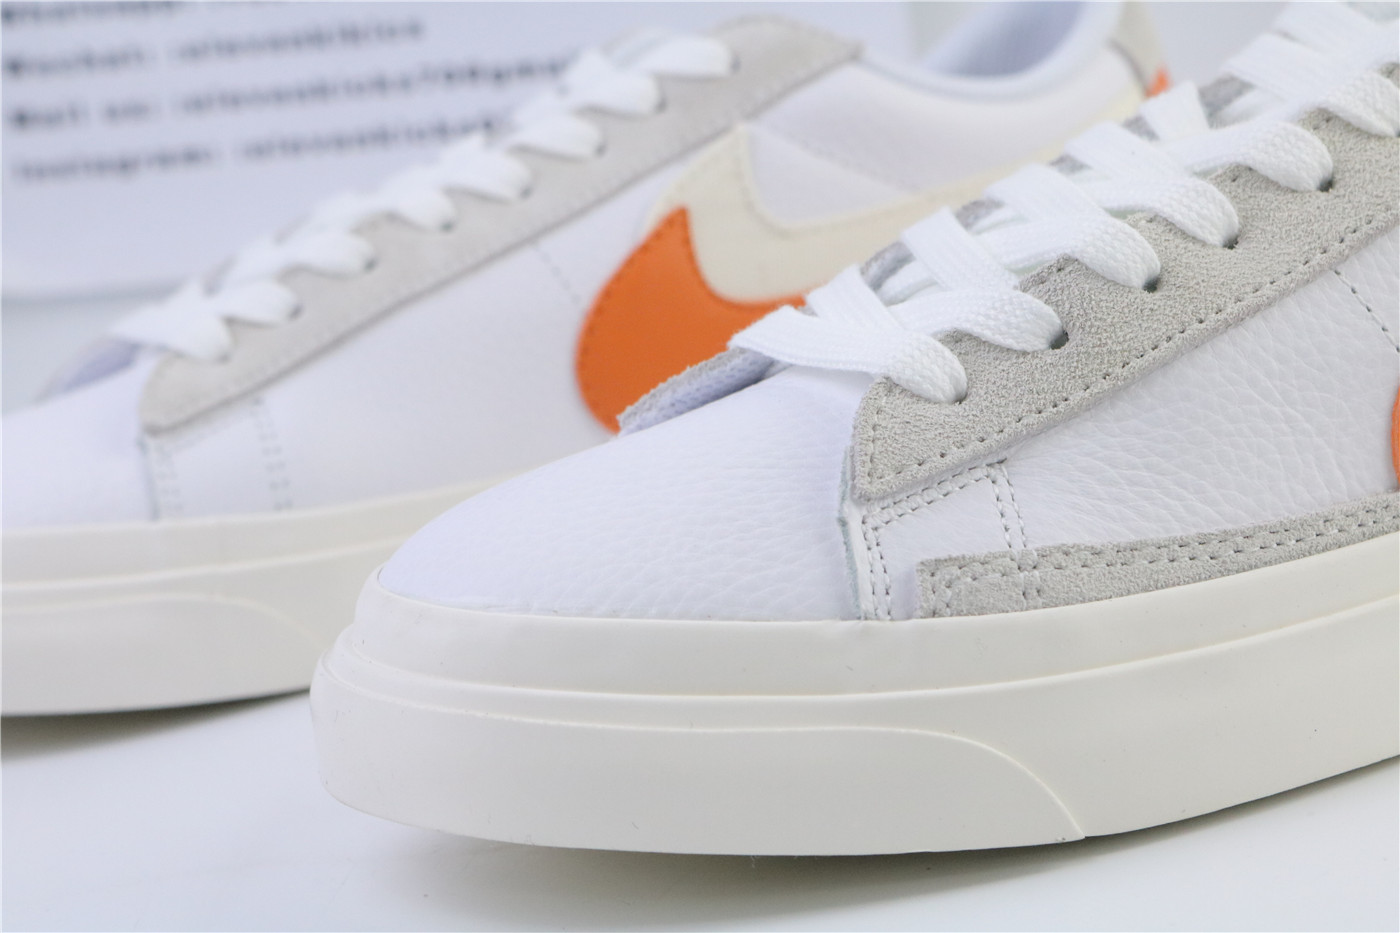 Sacai X Nike Blazer Low Orange